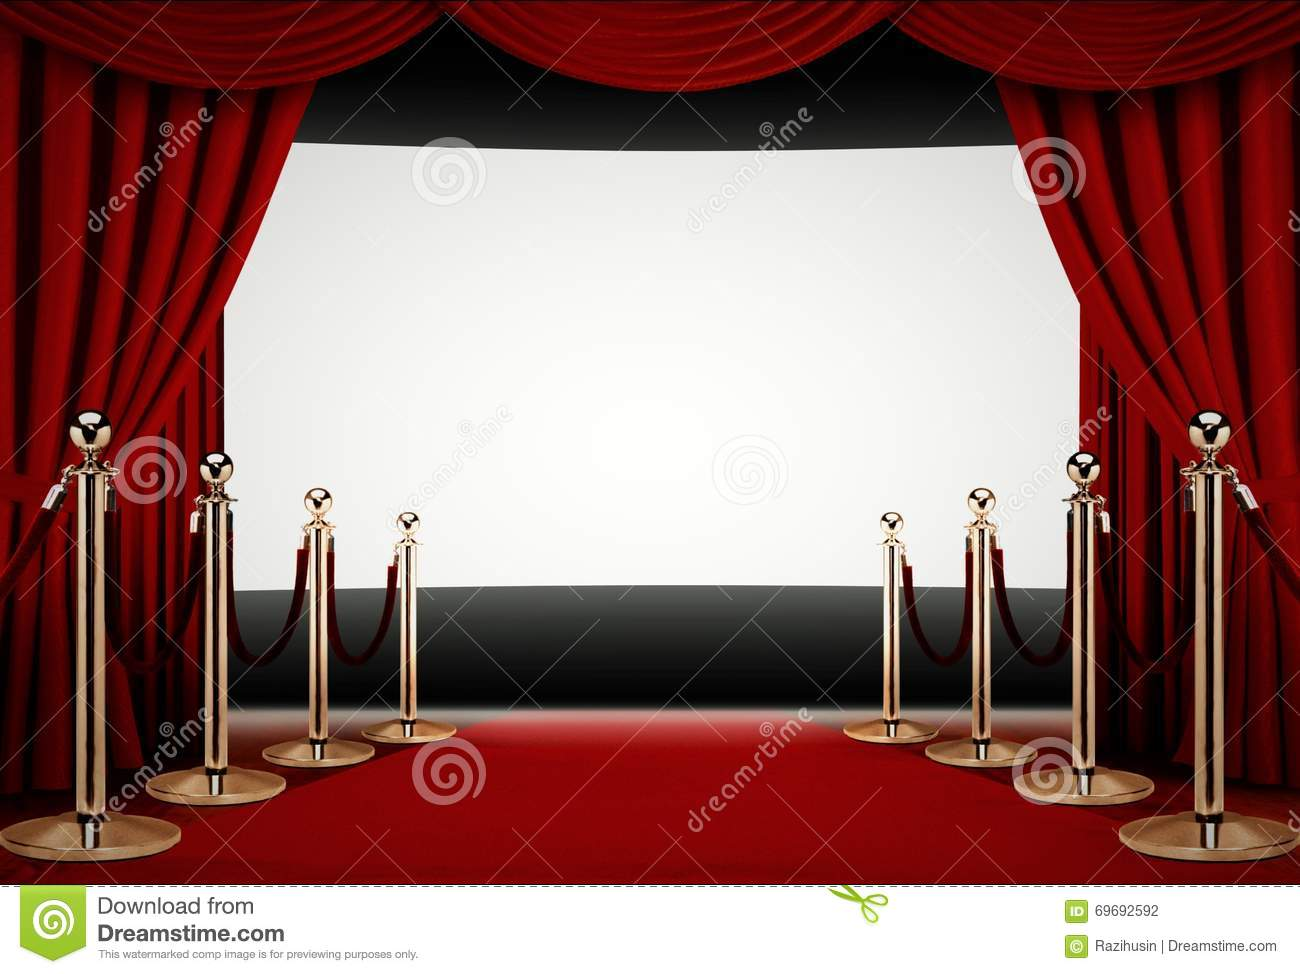 red carpet to a movie premiere event stock photo image